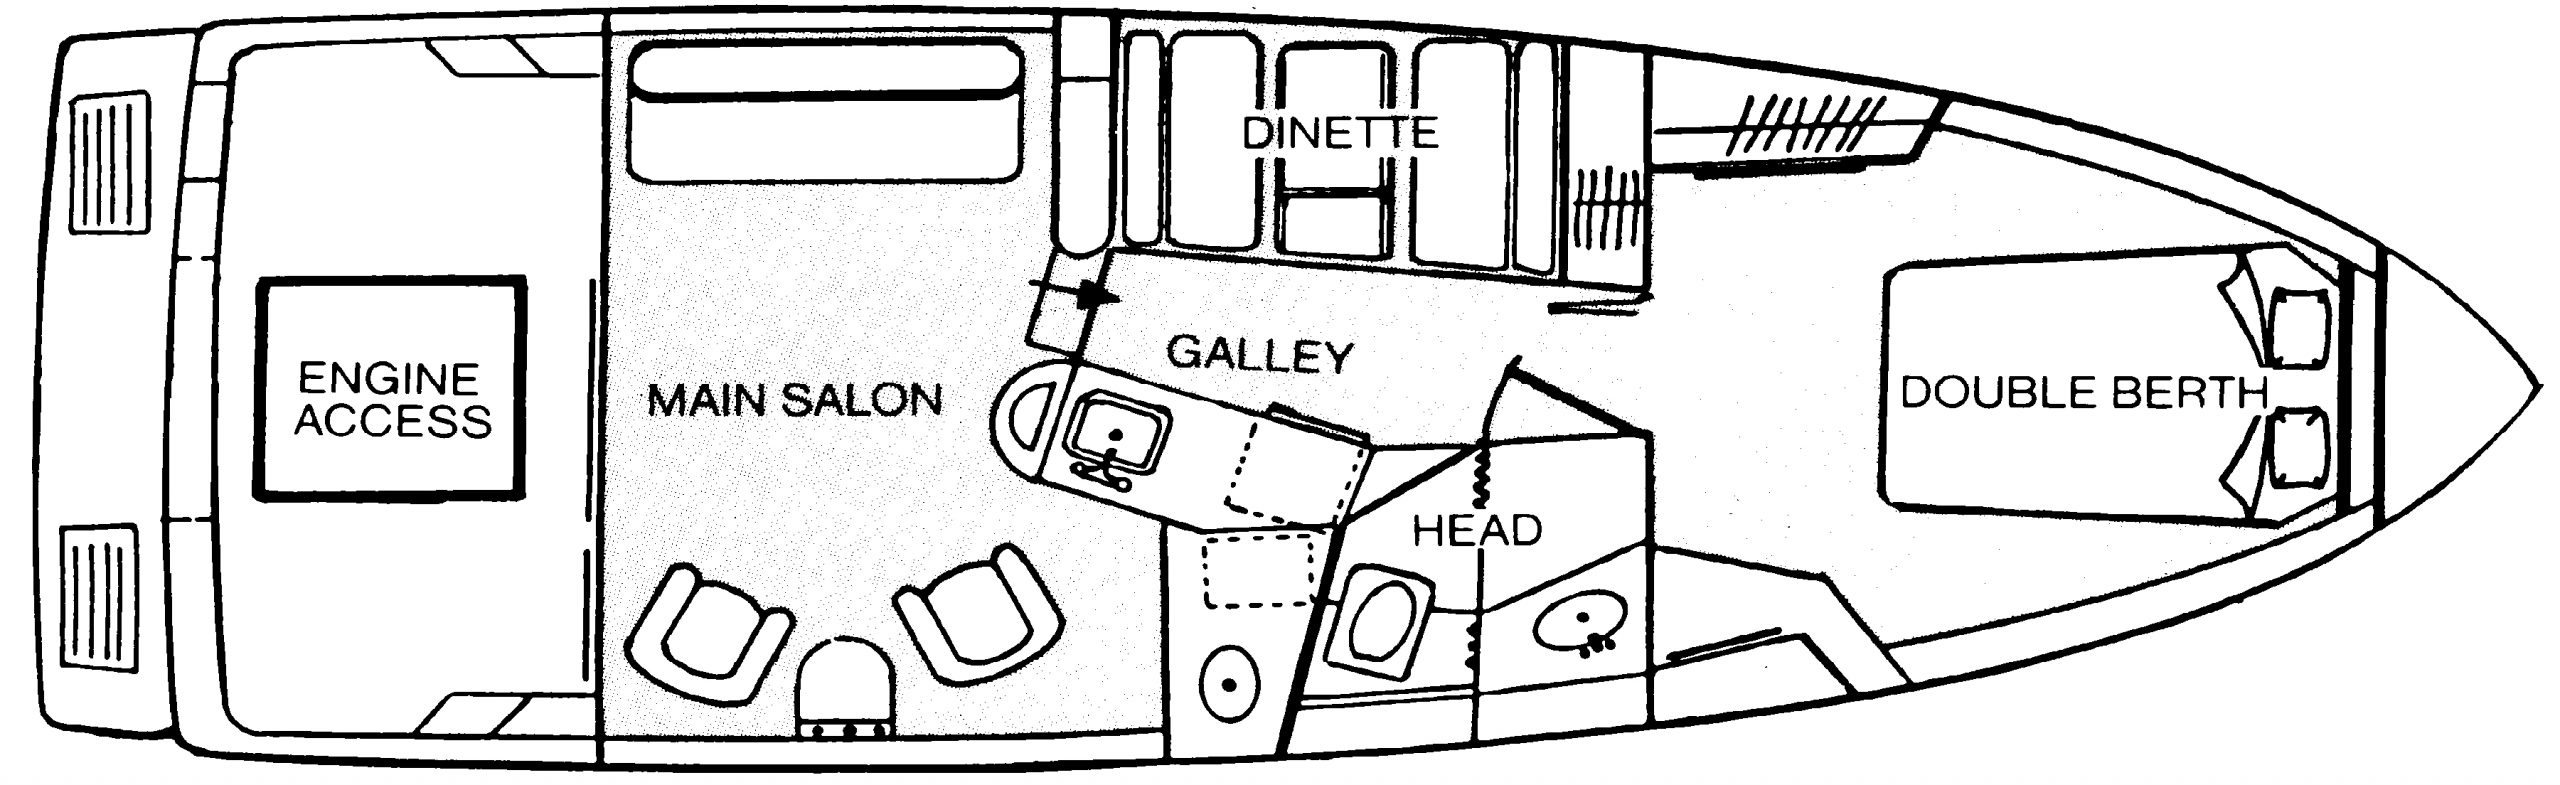 340 Sedan Bridge Floor Plan 1